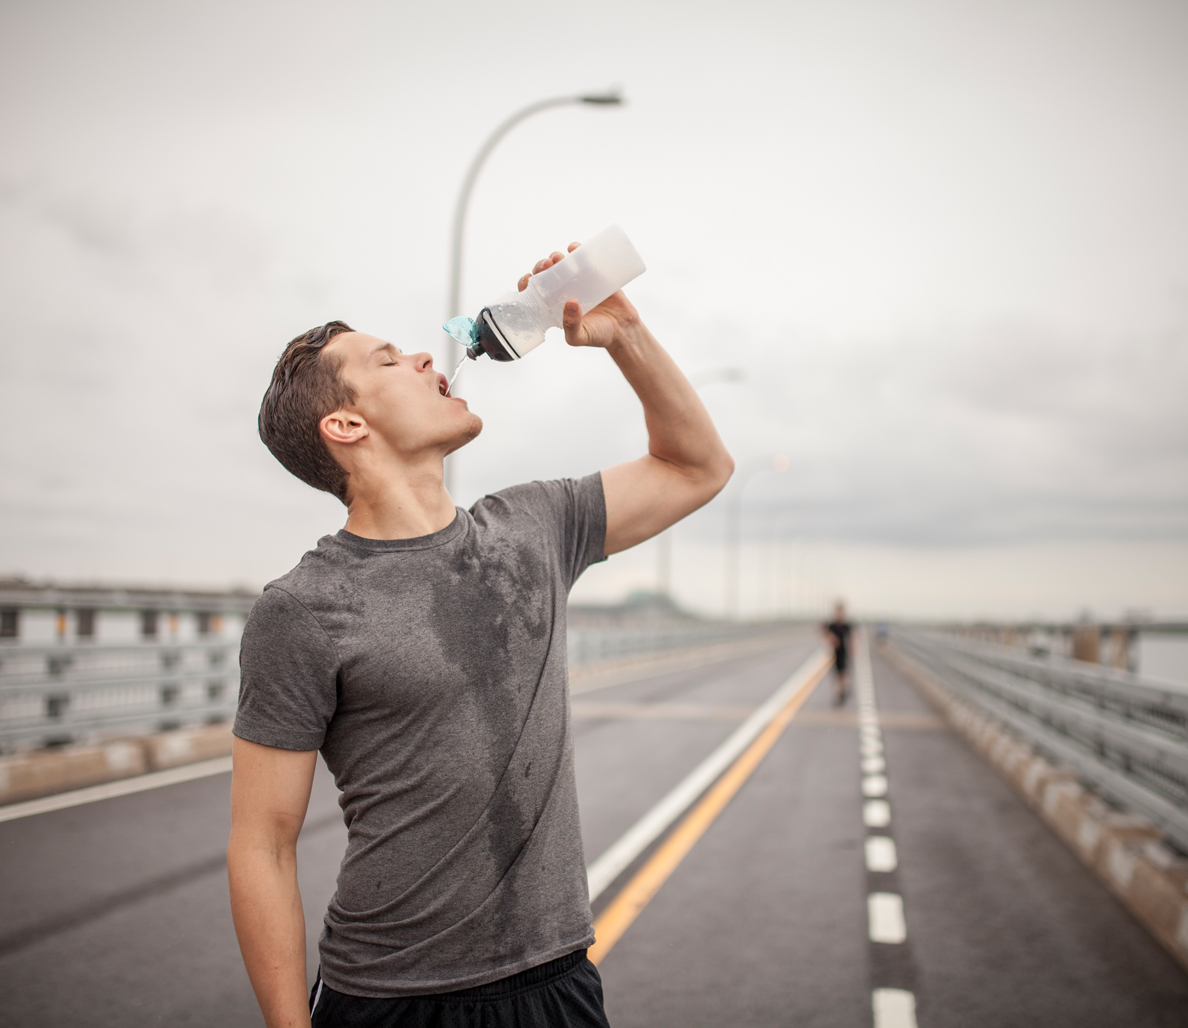 The Best Drinks Besides Water to Stay Hydrated and Fuel Your